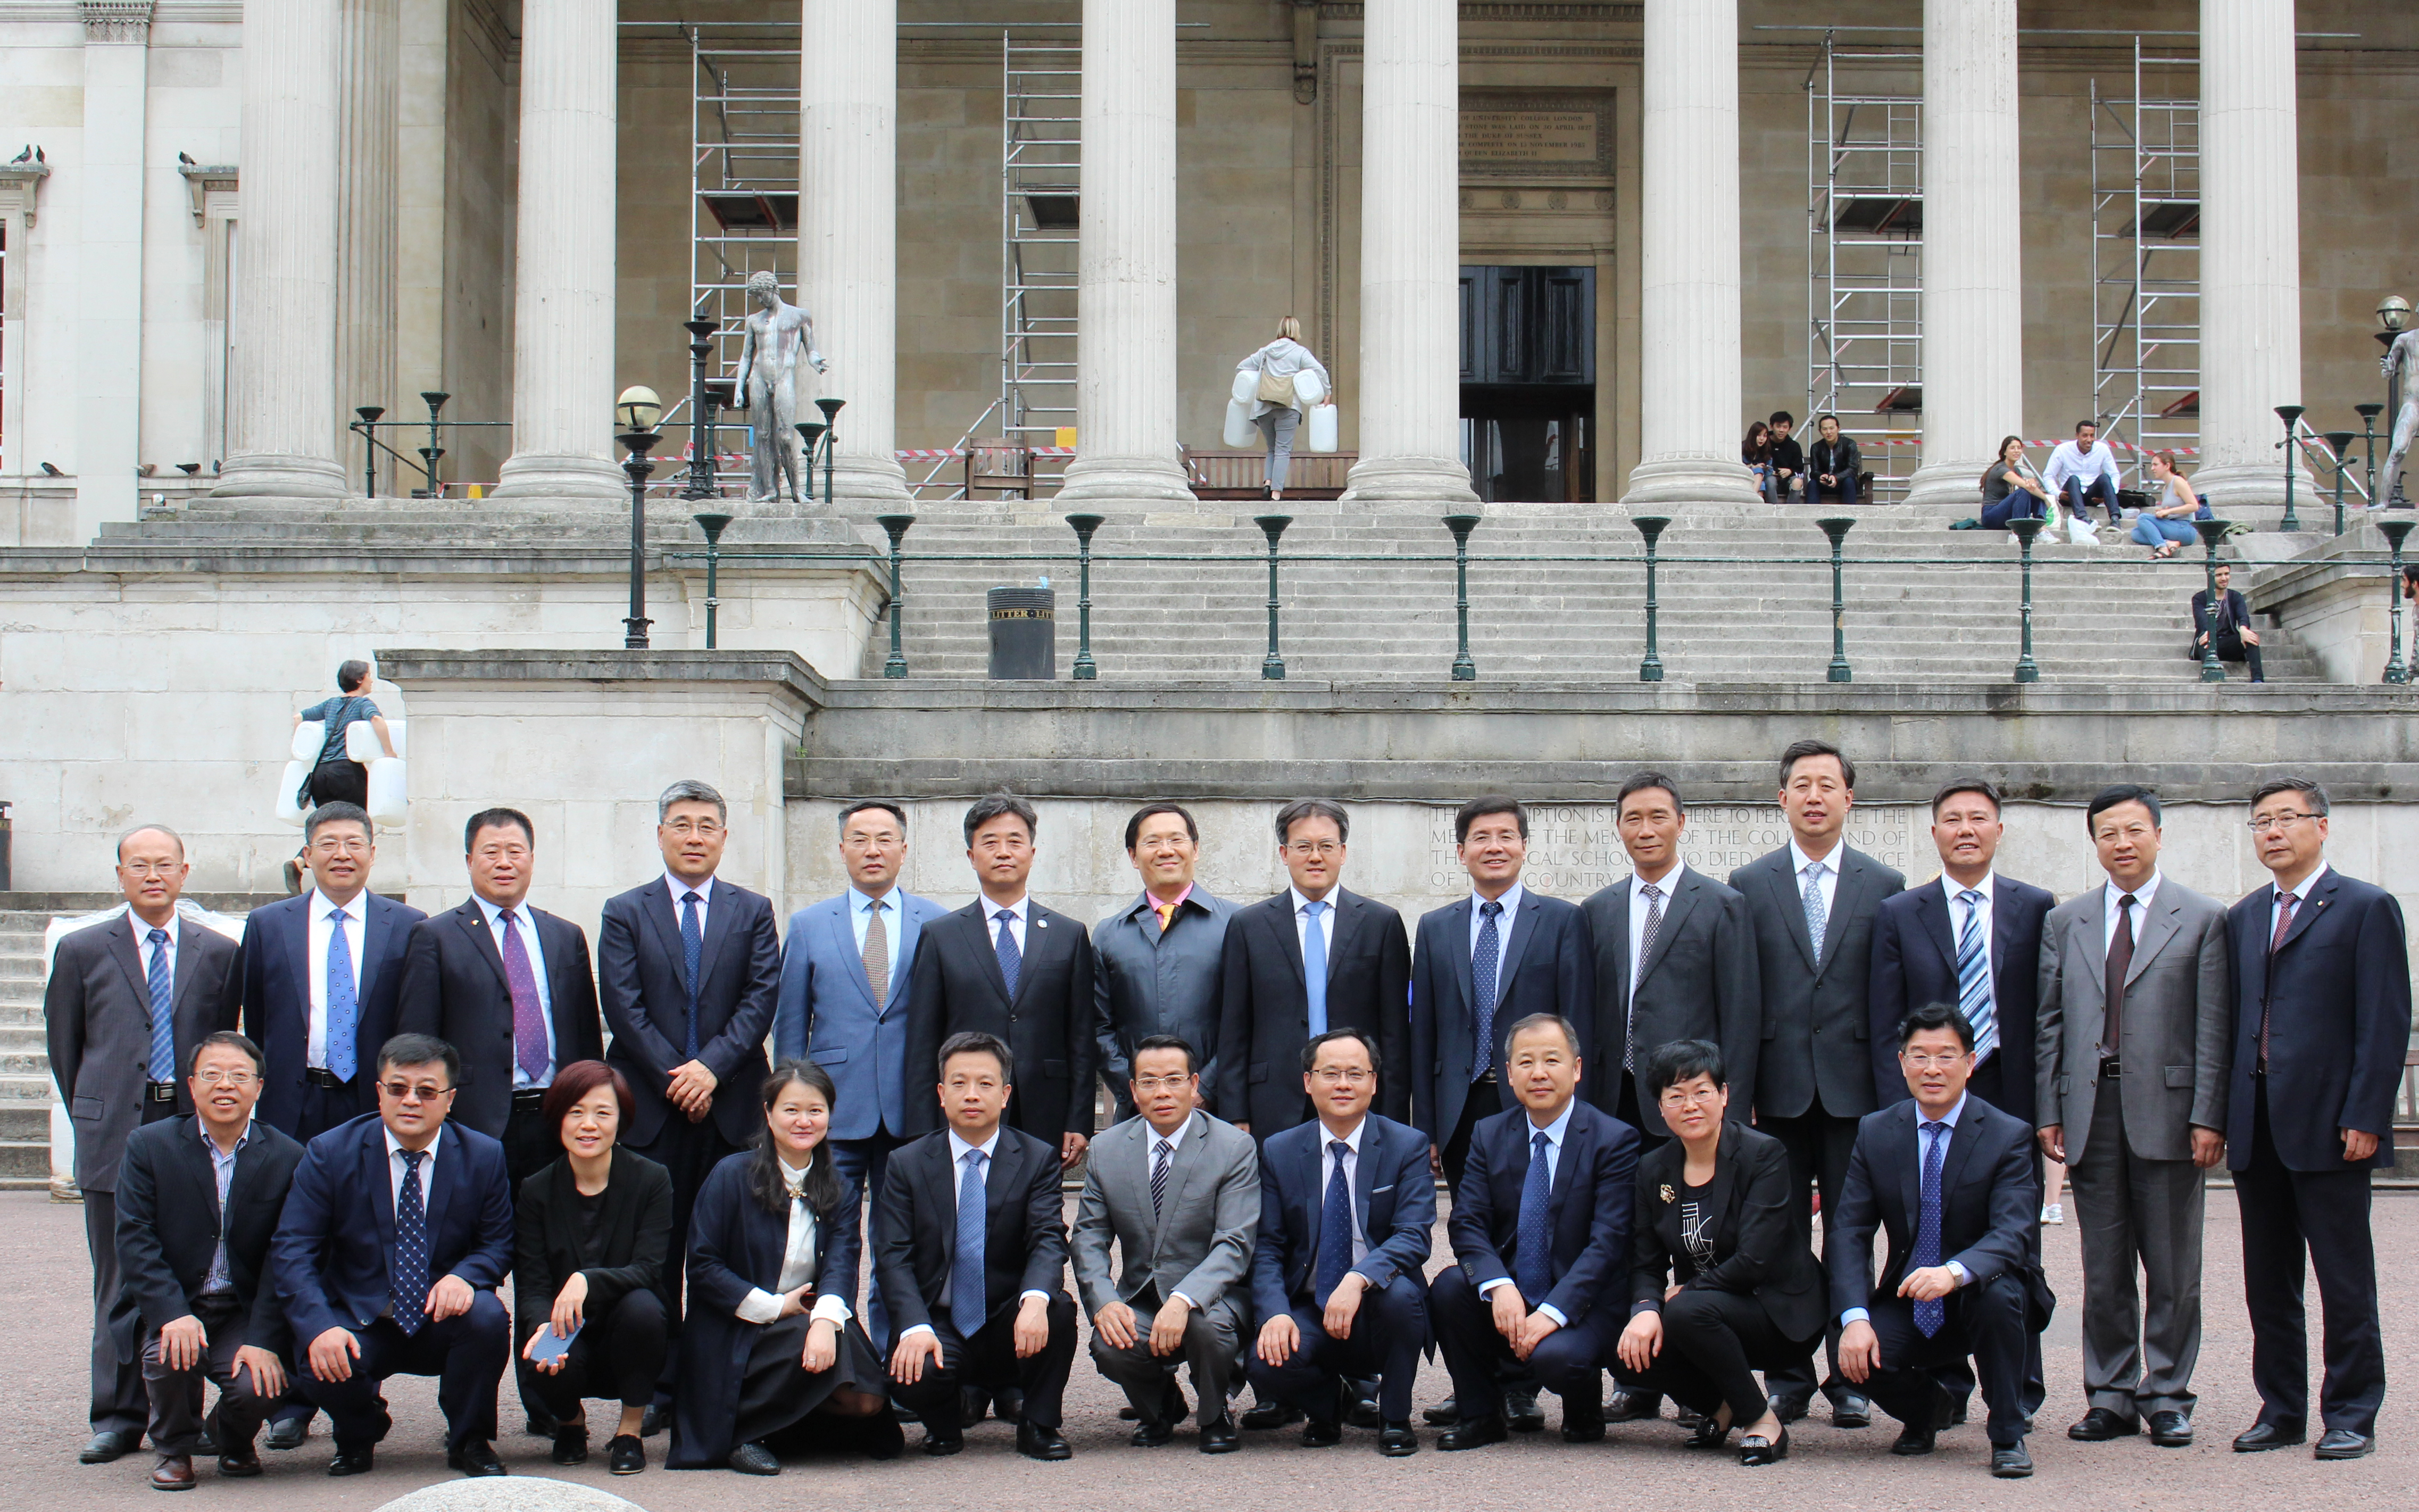 Chinese vice-presidential delegation